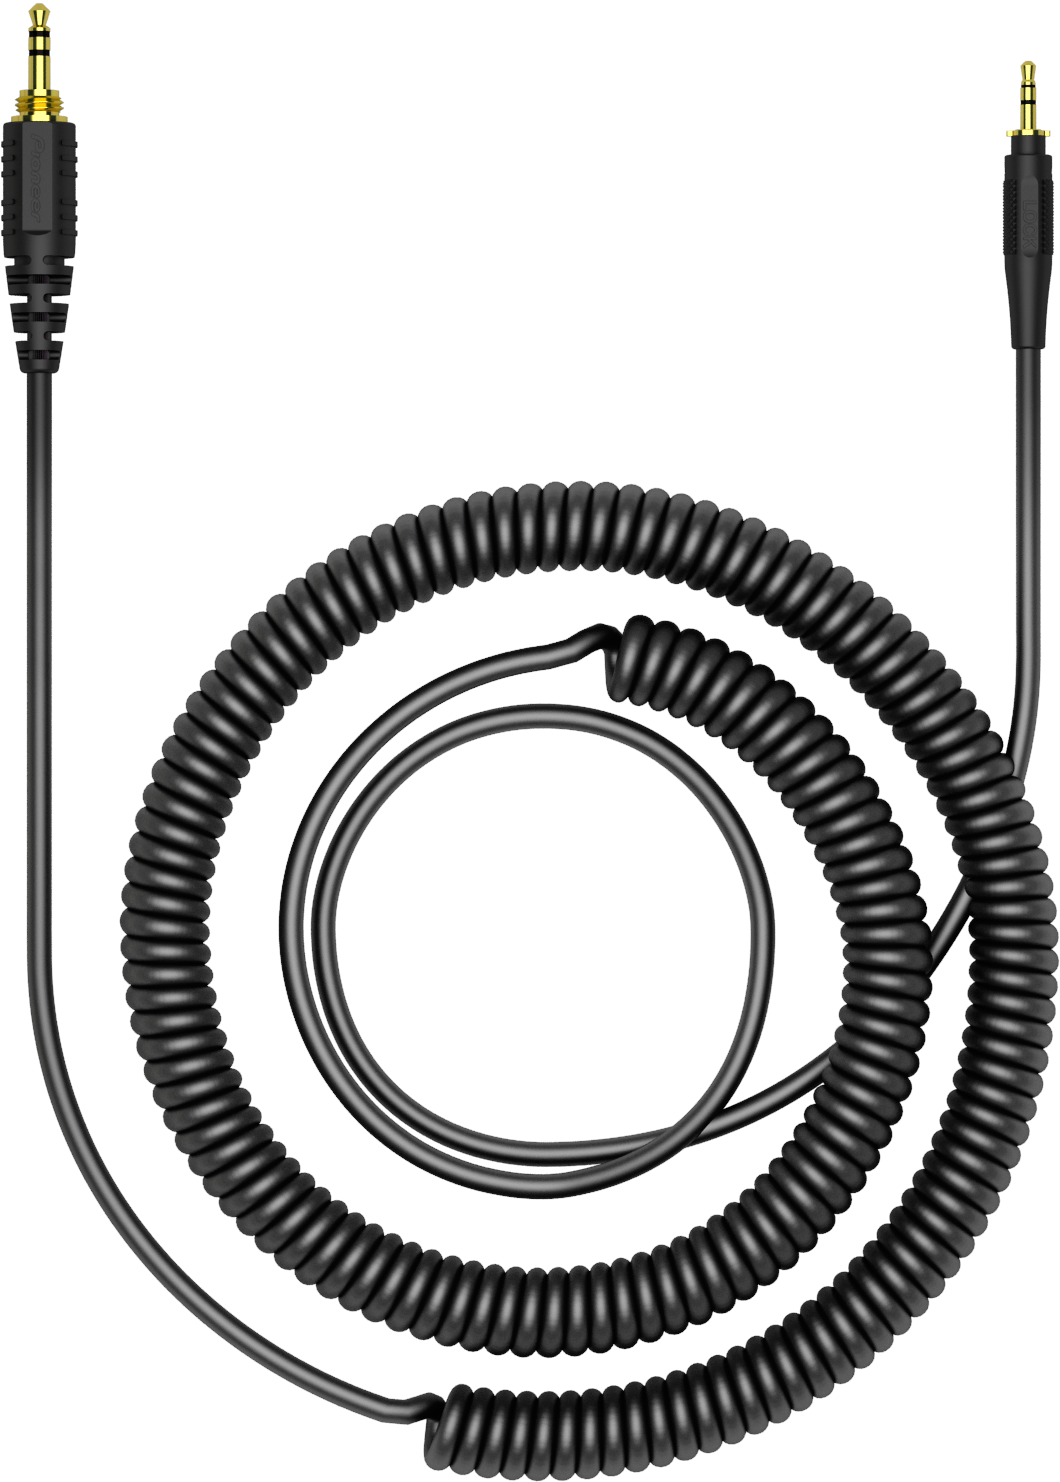 1060x1482 Hc Ca0401 1.2 M Coiled Cable For The Hrm 7, Hrm 6 And Hrm 5